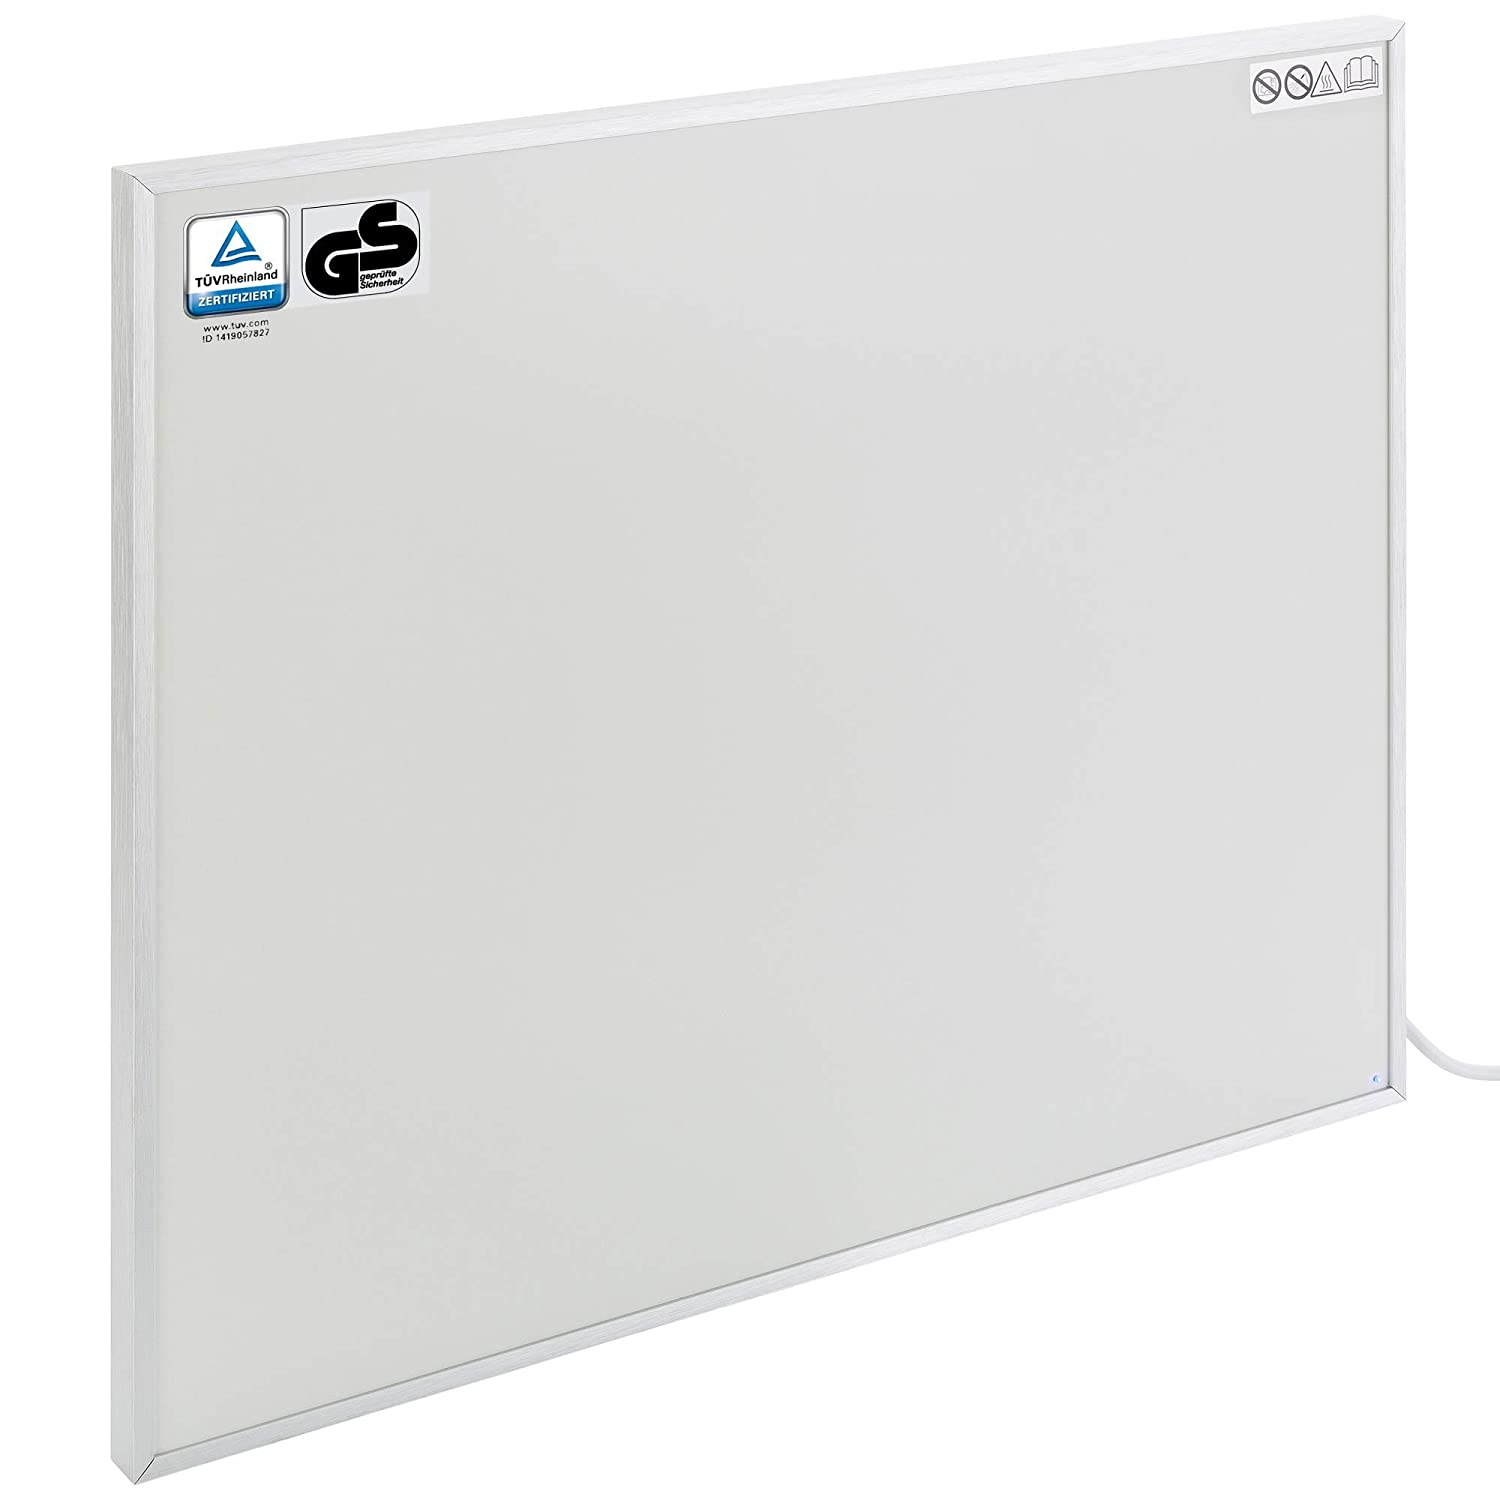 Arebos Chauffage infrarouge 300 W / possé dant le sigle GS / Protection anti-surchauffe / 605 x 505 x 22 mm Canbolat Vertriebs GmbH